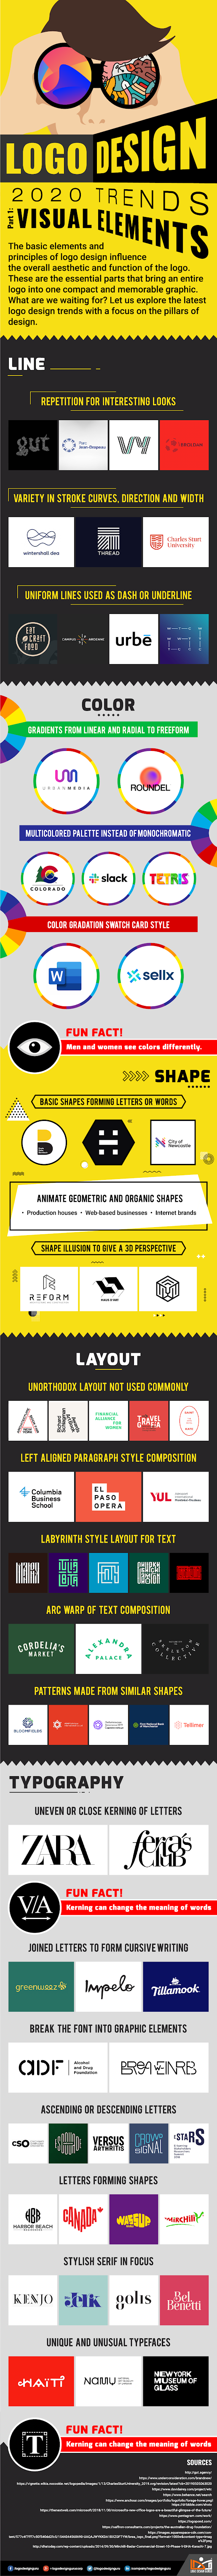 Logo Design 2020 Trends Visual Elements #infographic